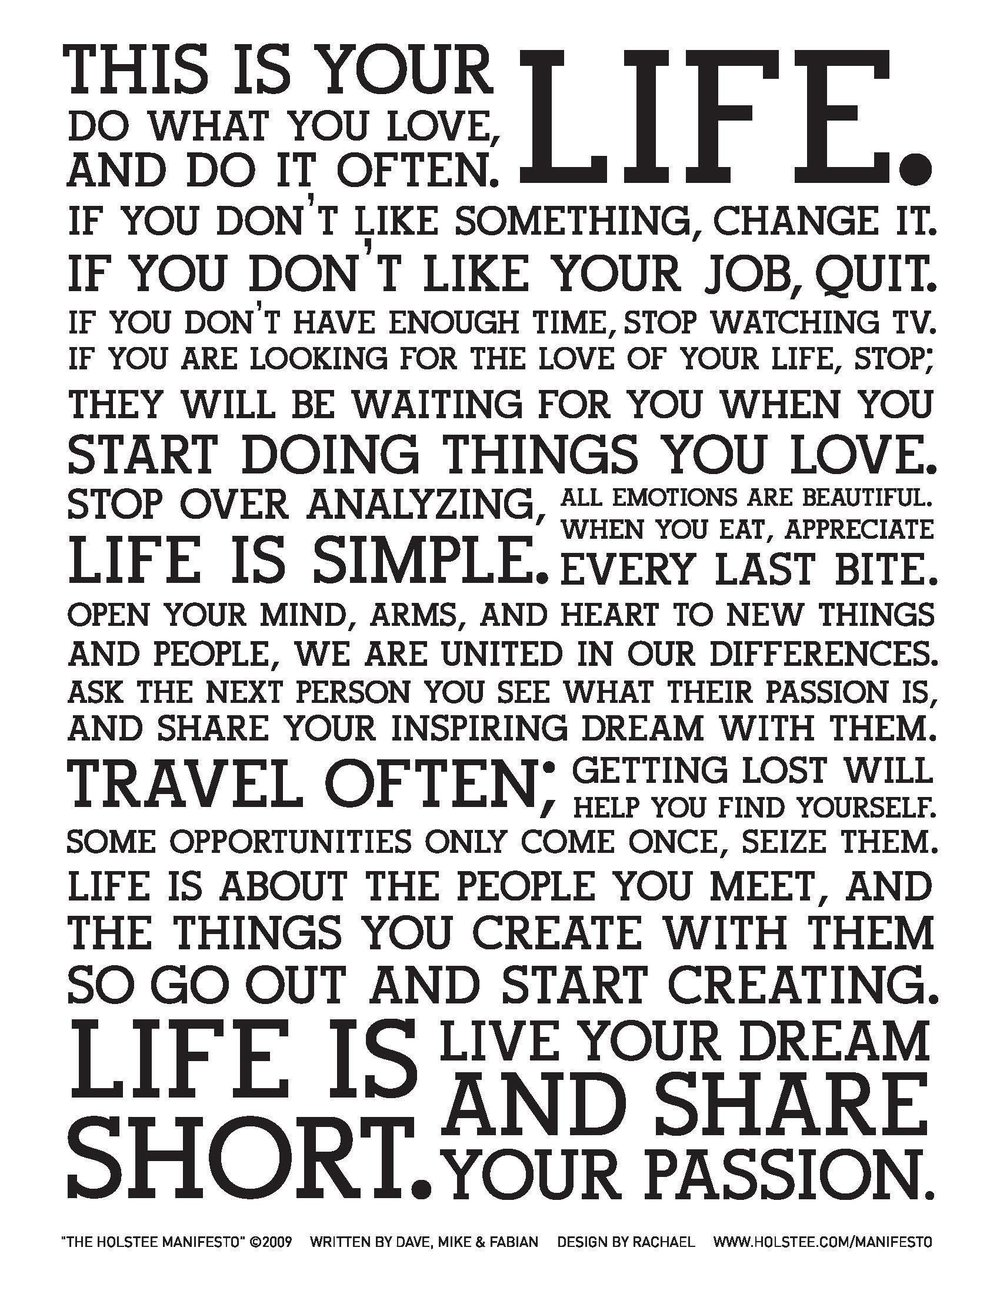 824639-holstee-manifesto-wallpaper-1700x2200-for-ios.jpg